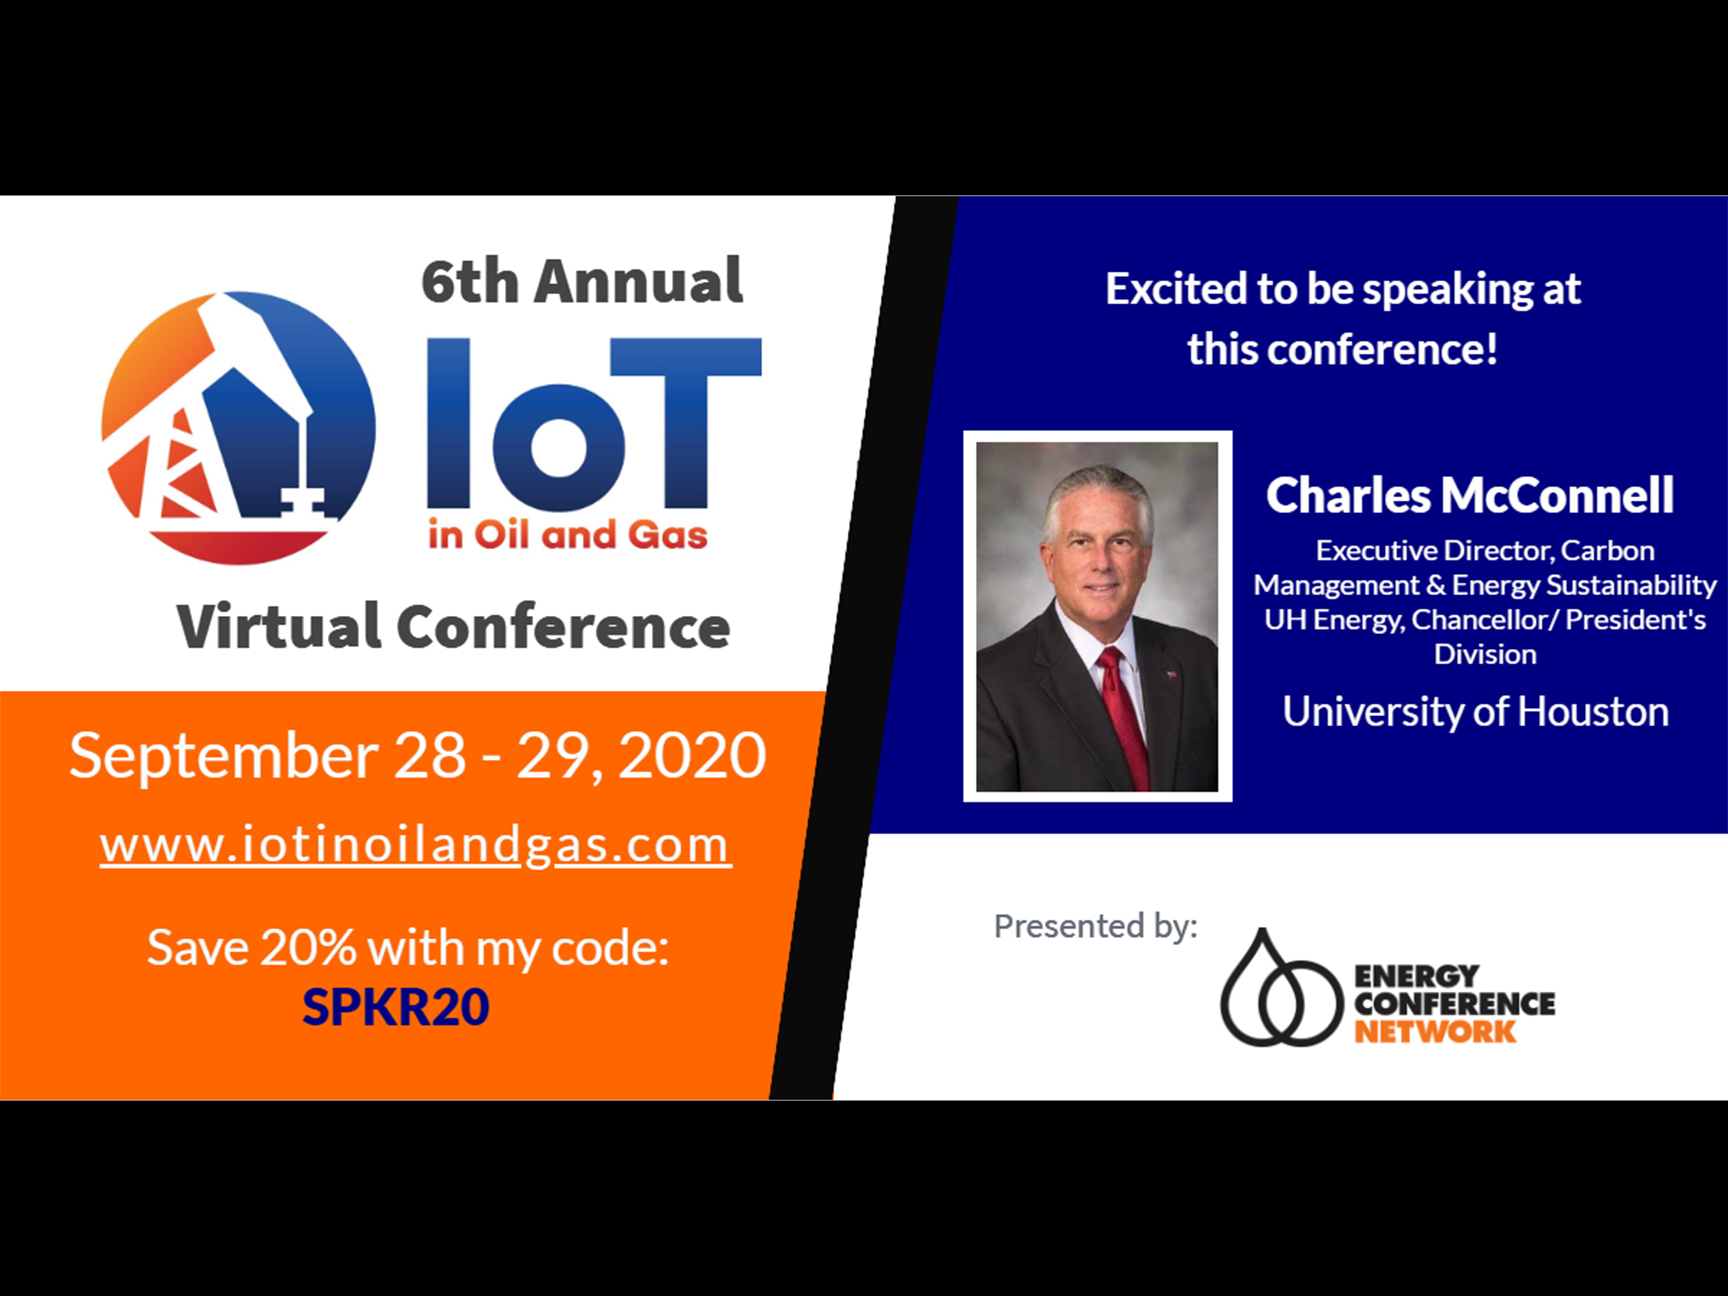 6th Annual IoT in Oil & Gas Conference Image